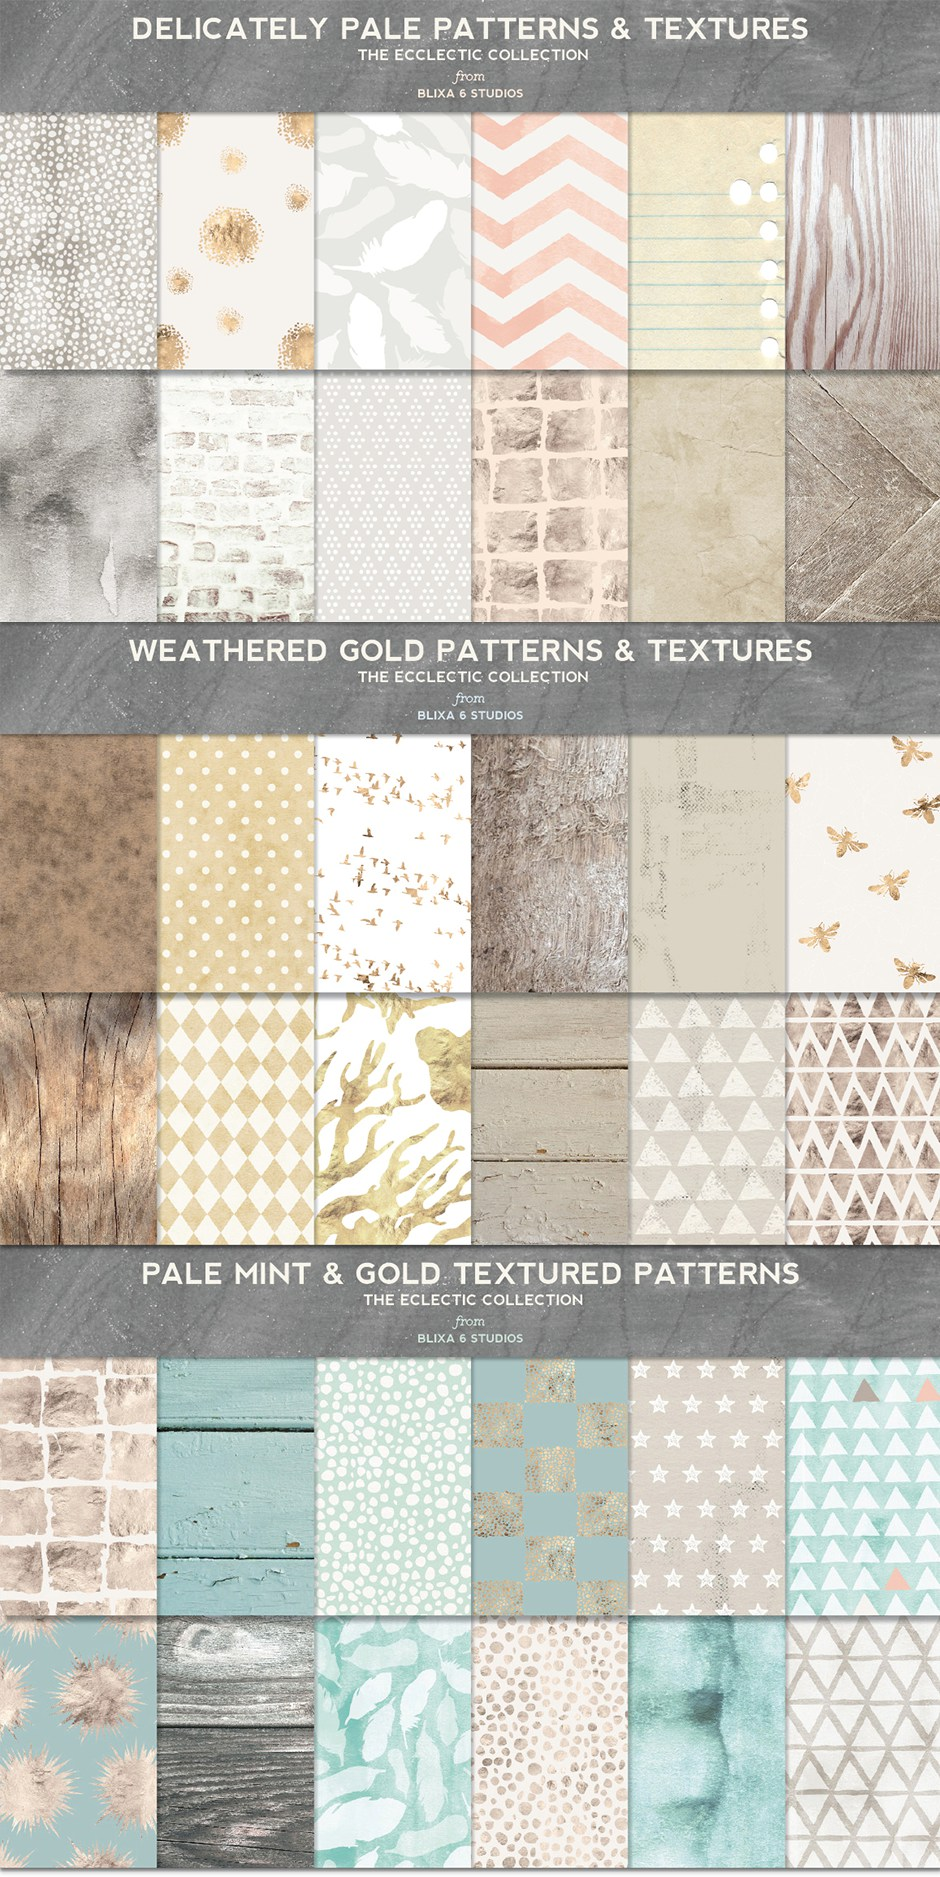 168 Eclectic Textures & Watercolor Digital Patterns